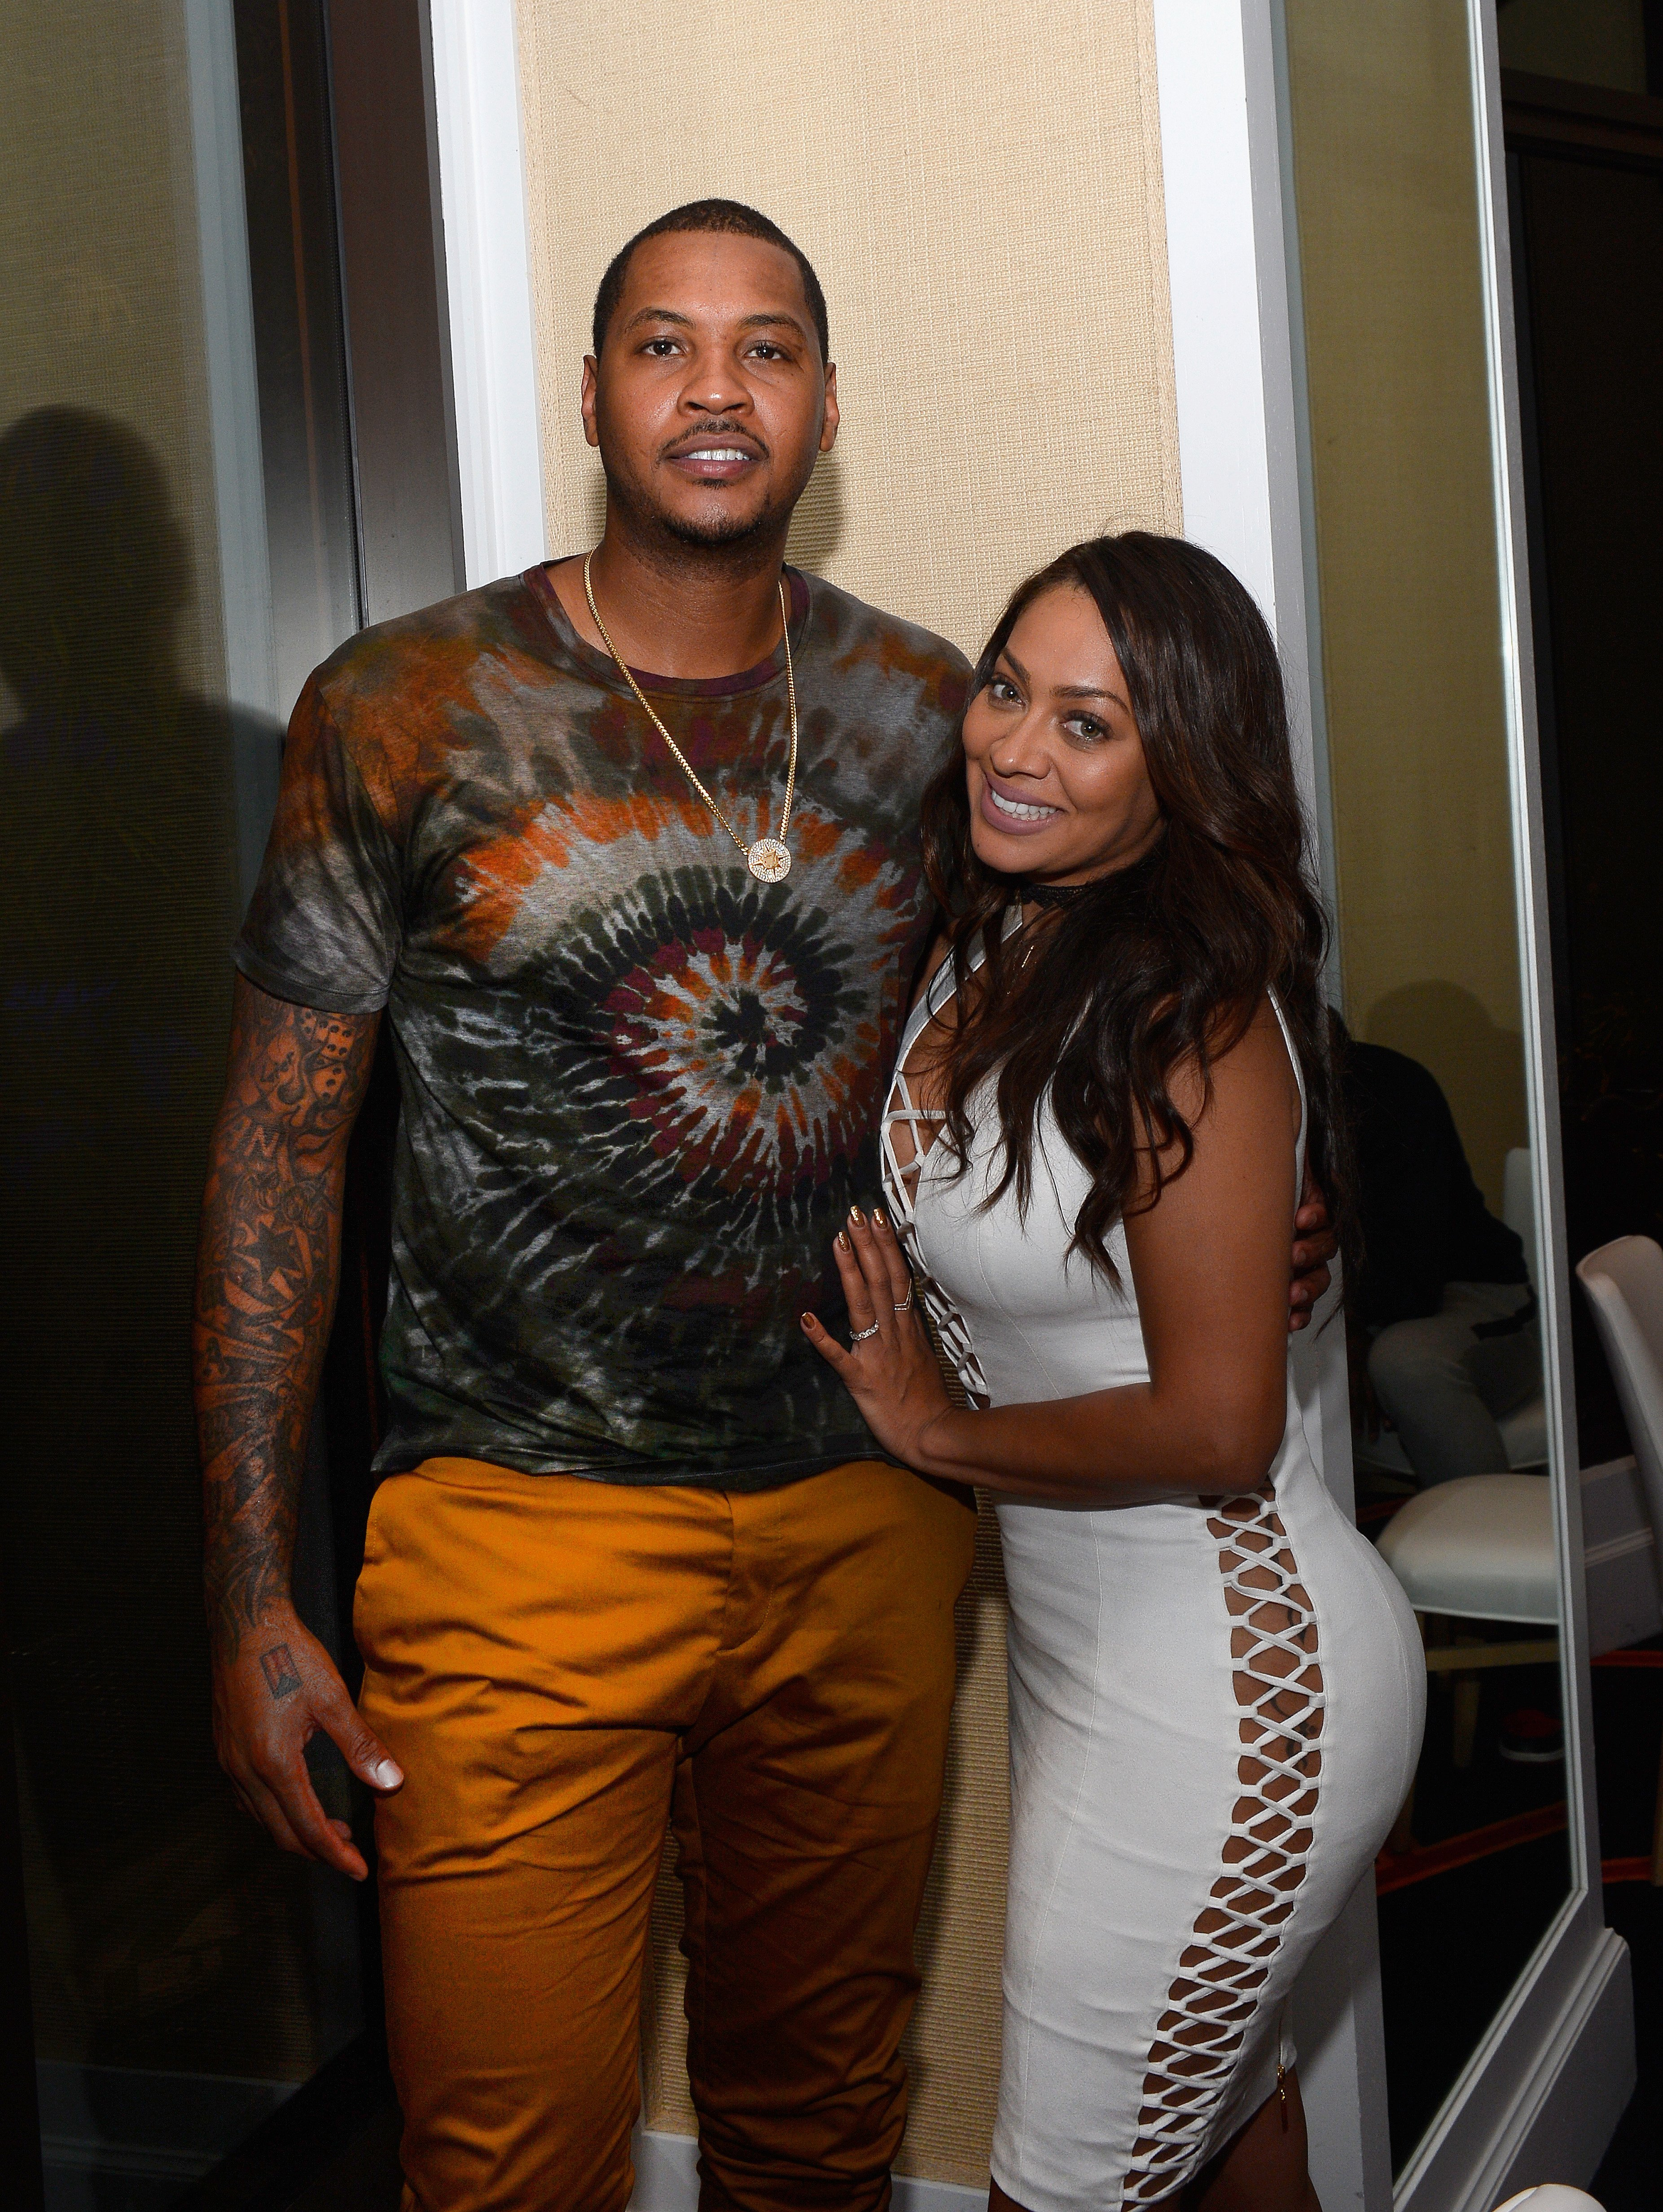 Carmelo and La La Anthony during an NBA event in 2016. | Photo: Getty Images